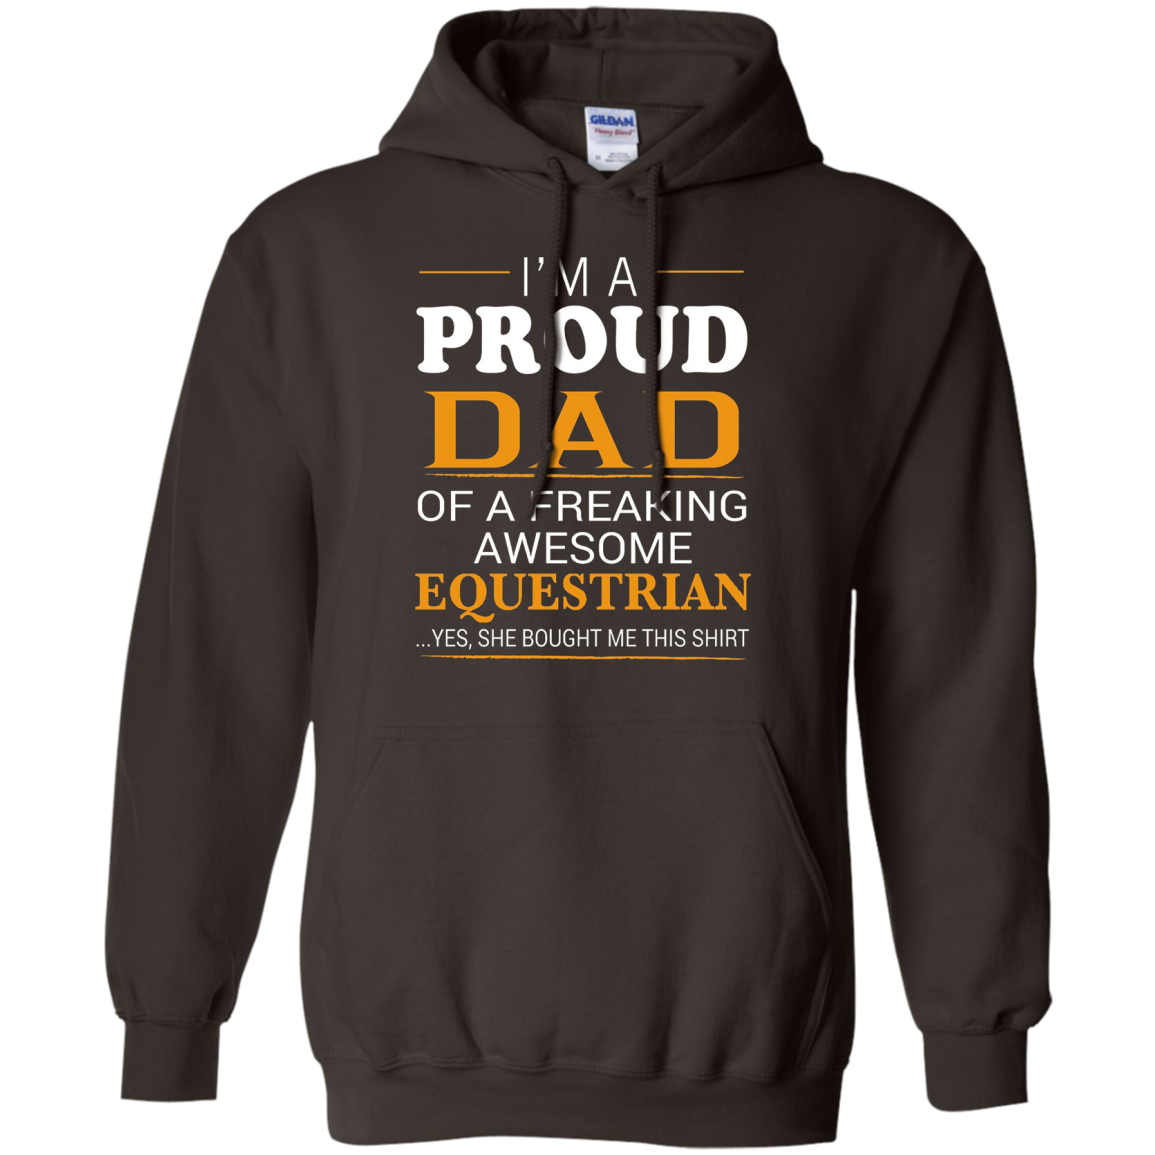 I'm A Proud Dad of Equestrian - She Bought Me This Shirt